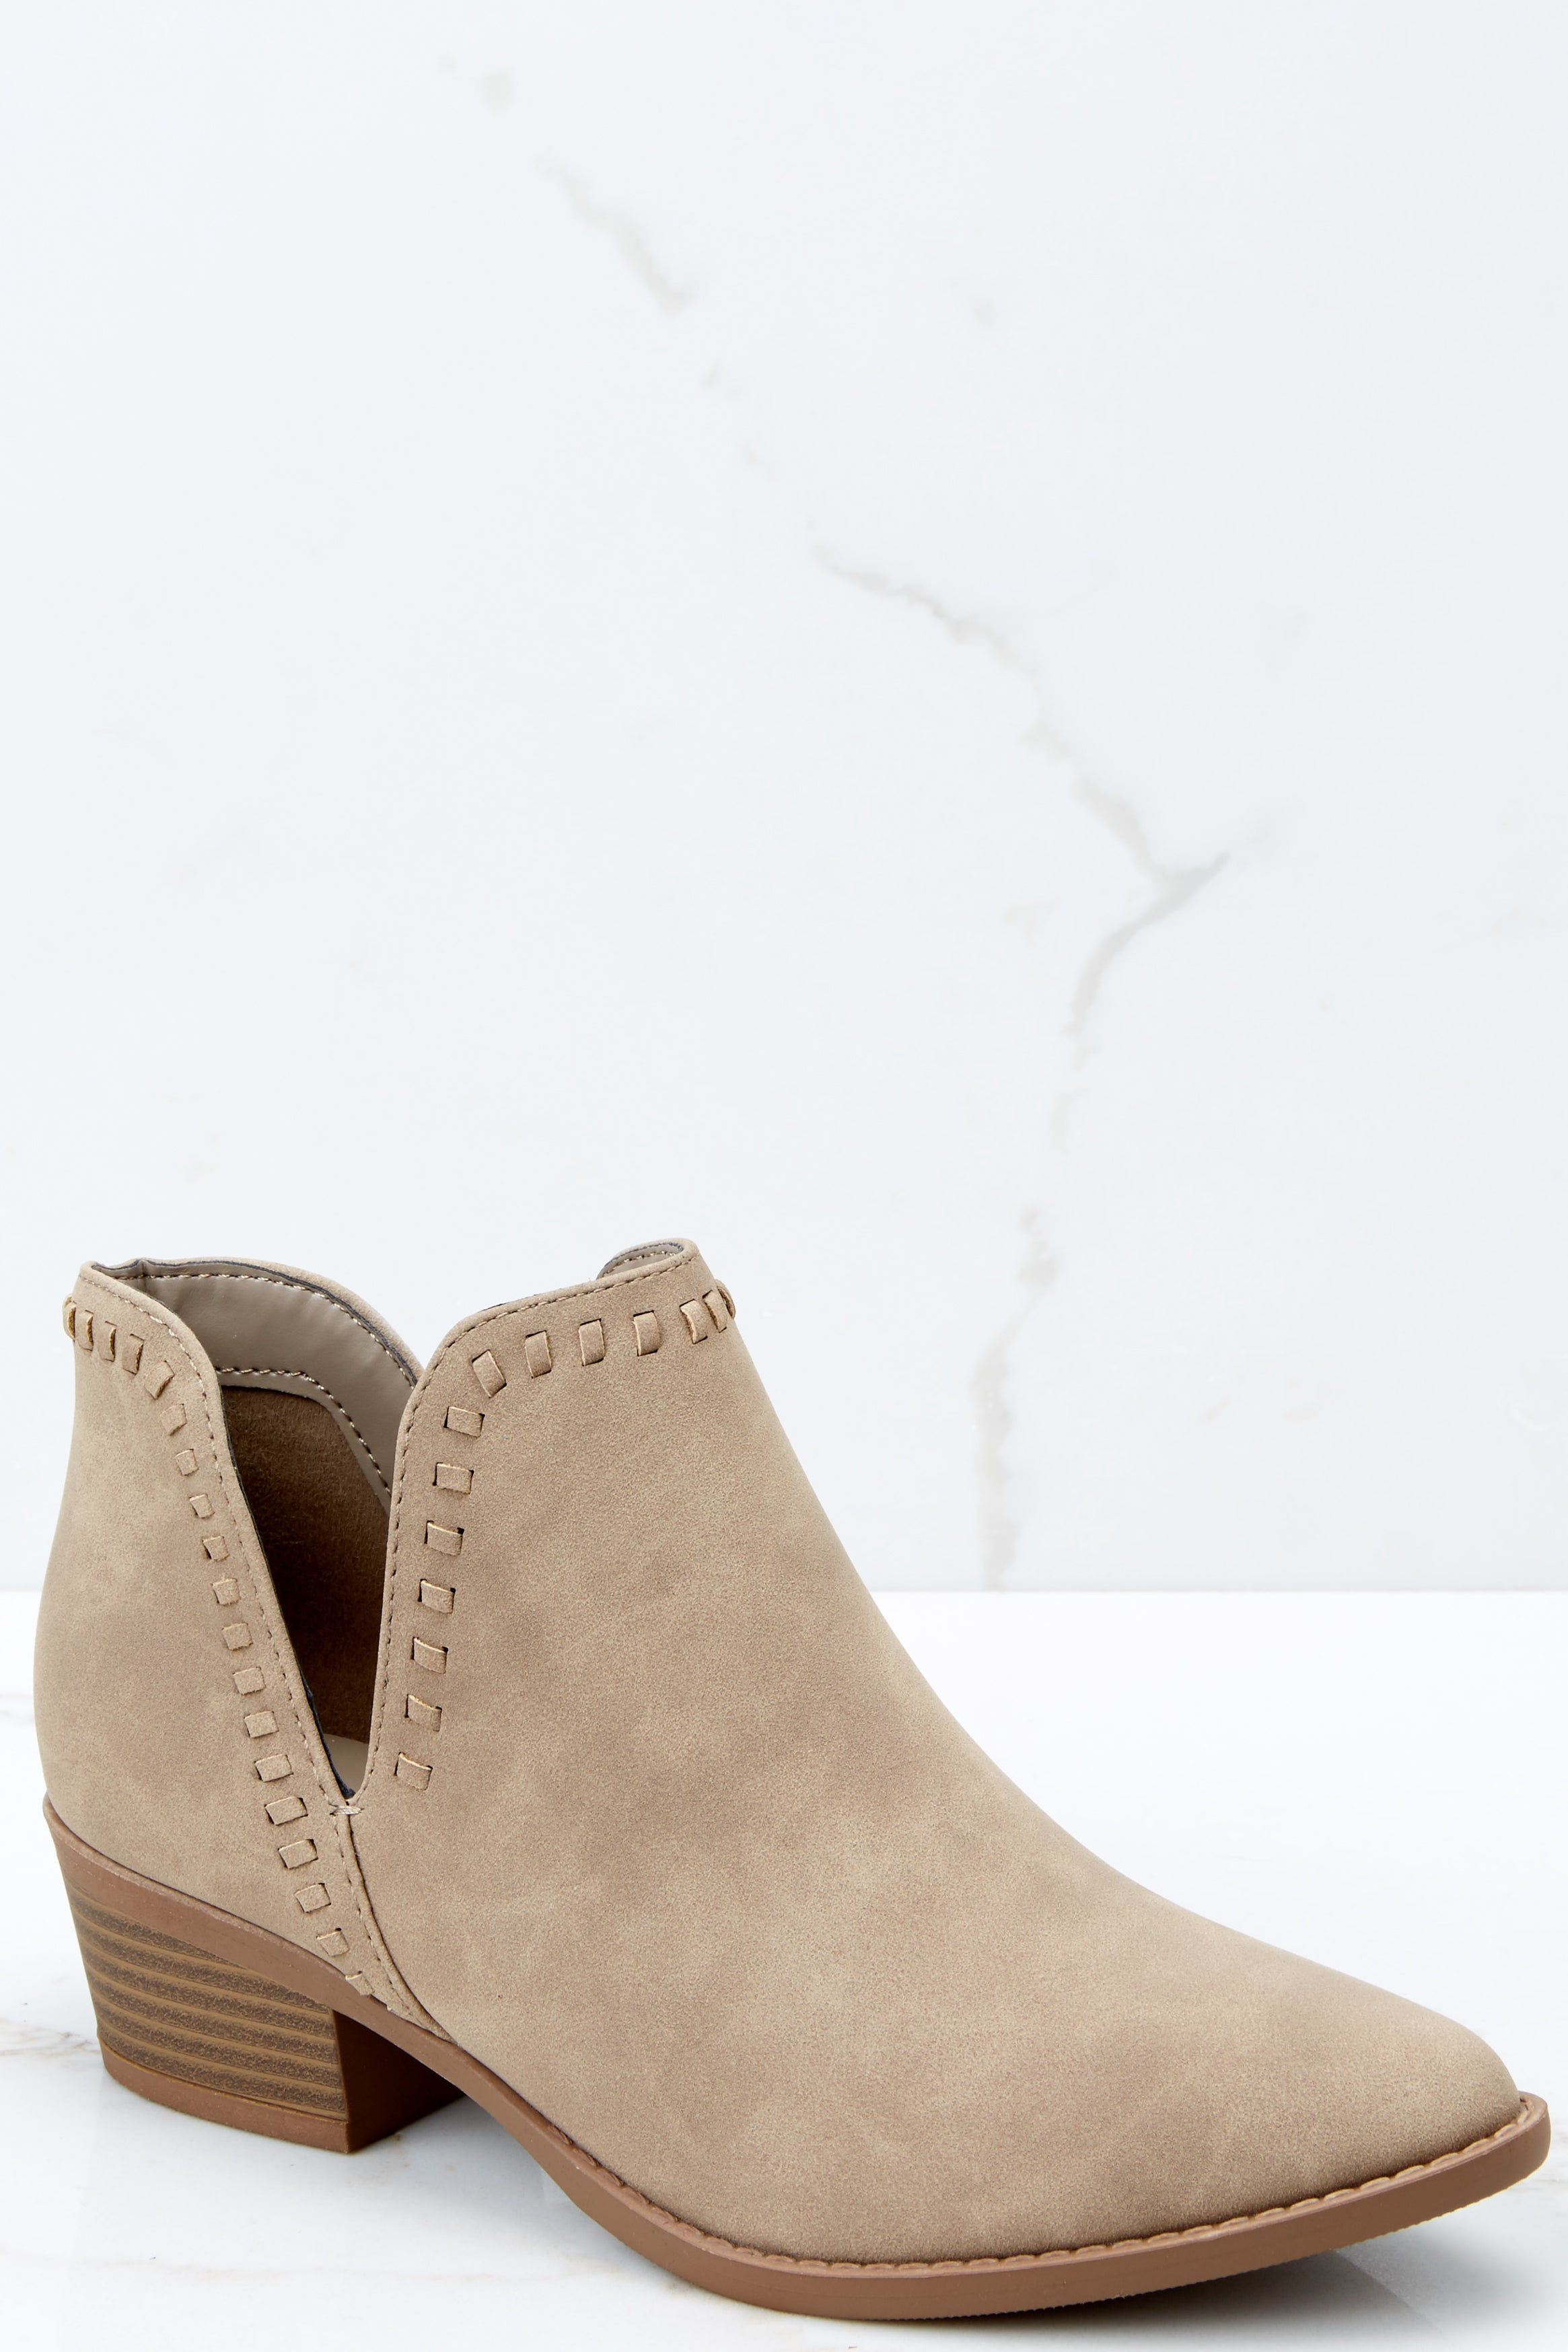 8ebfe7b145f0 Taupe Ankle Booties - Ankle Booties - Booties -  36.00 – Red Dress